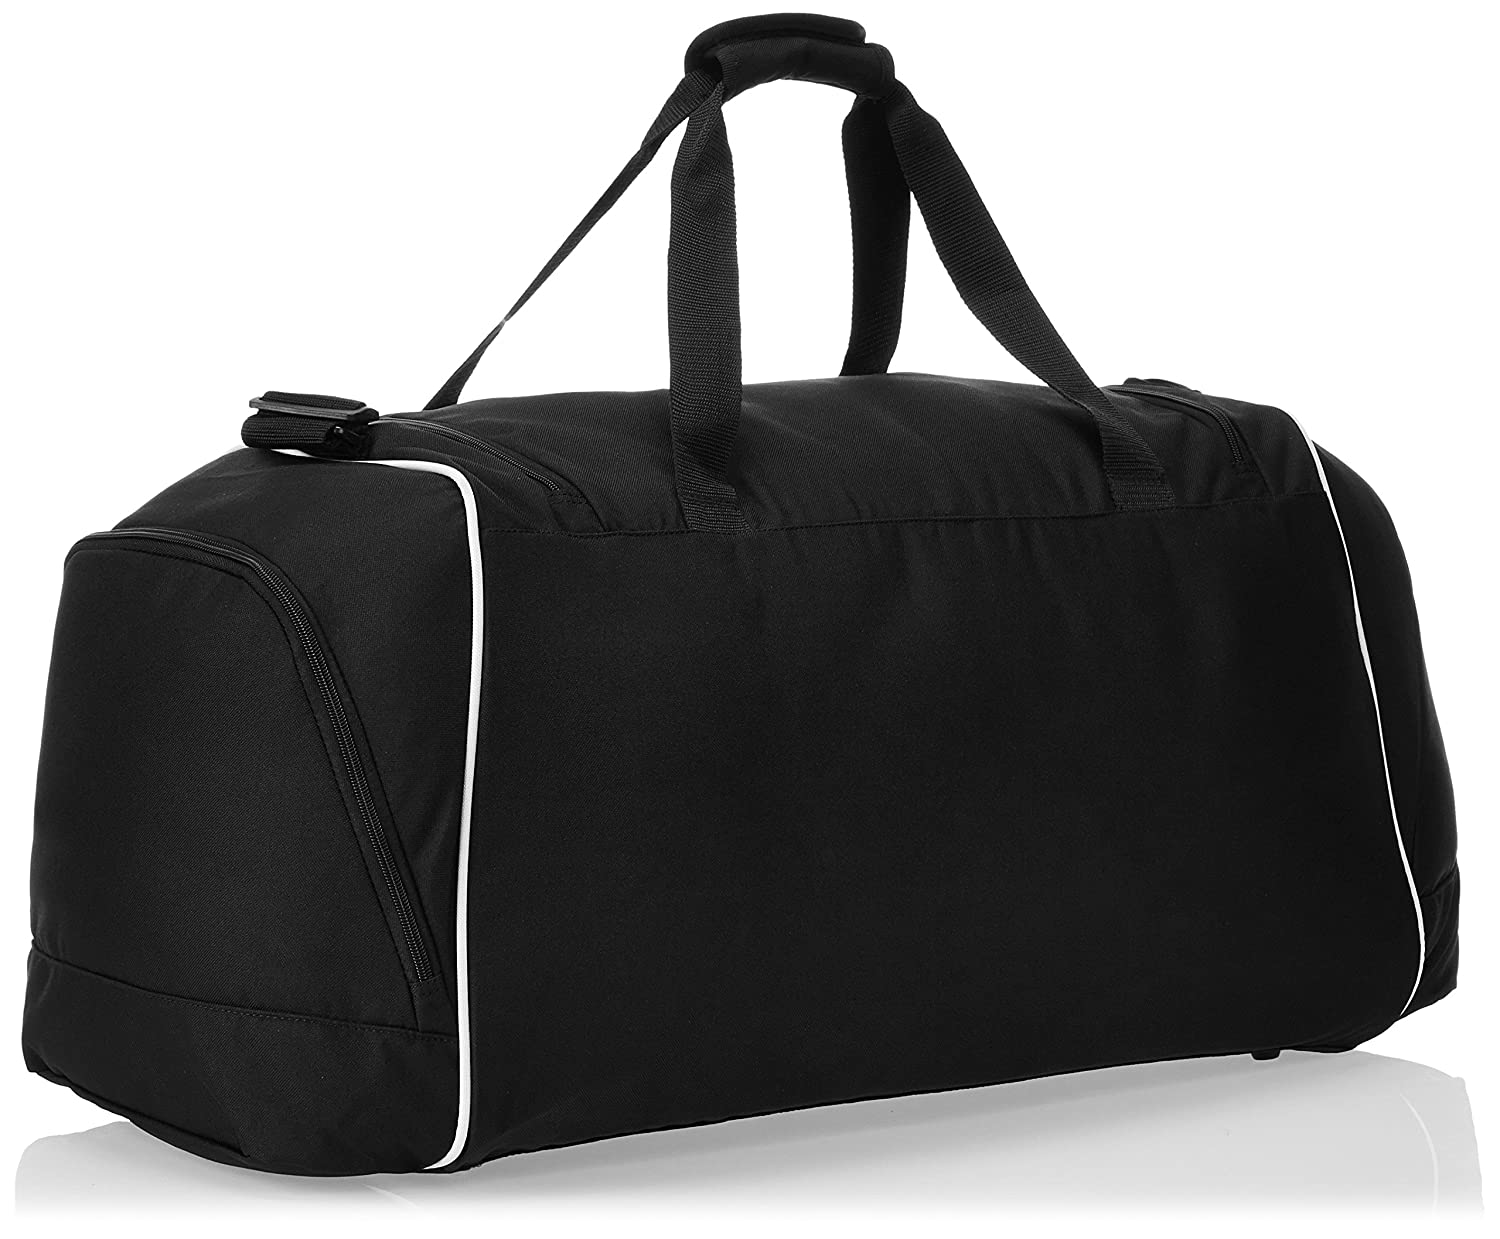 e94c02f195 Puma Sports Set Black Duffel Bag